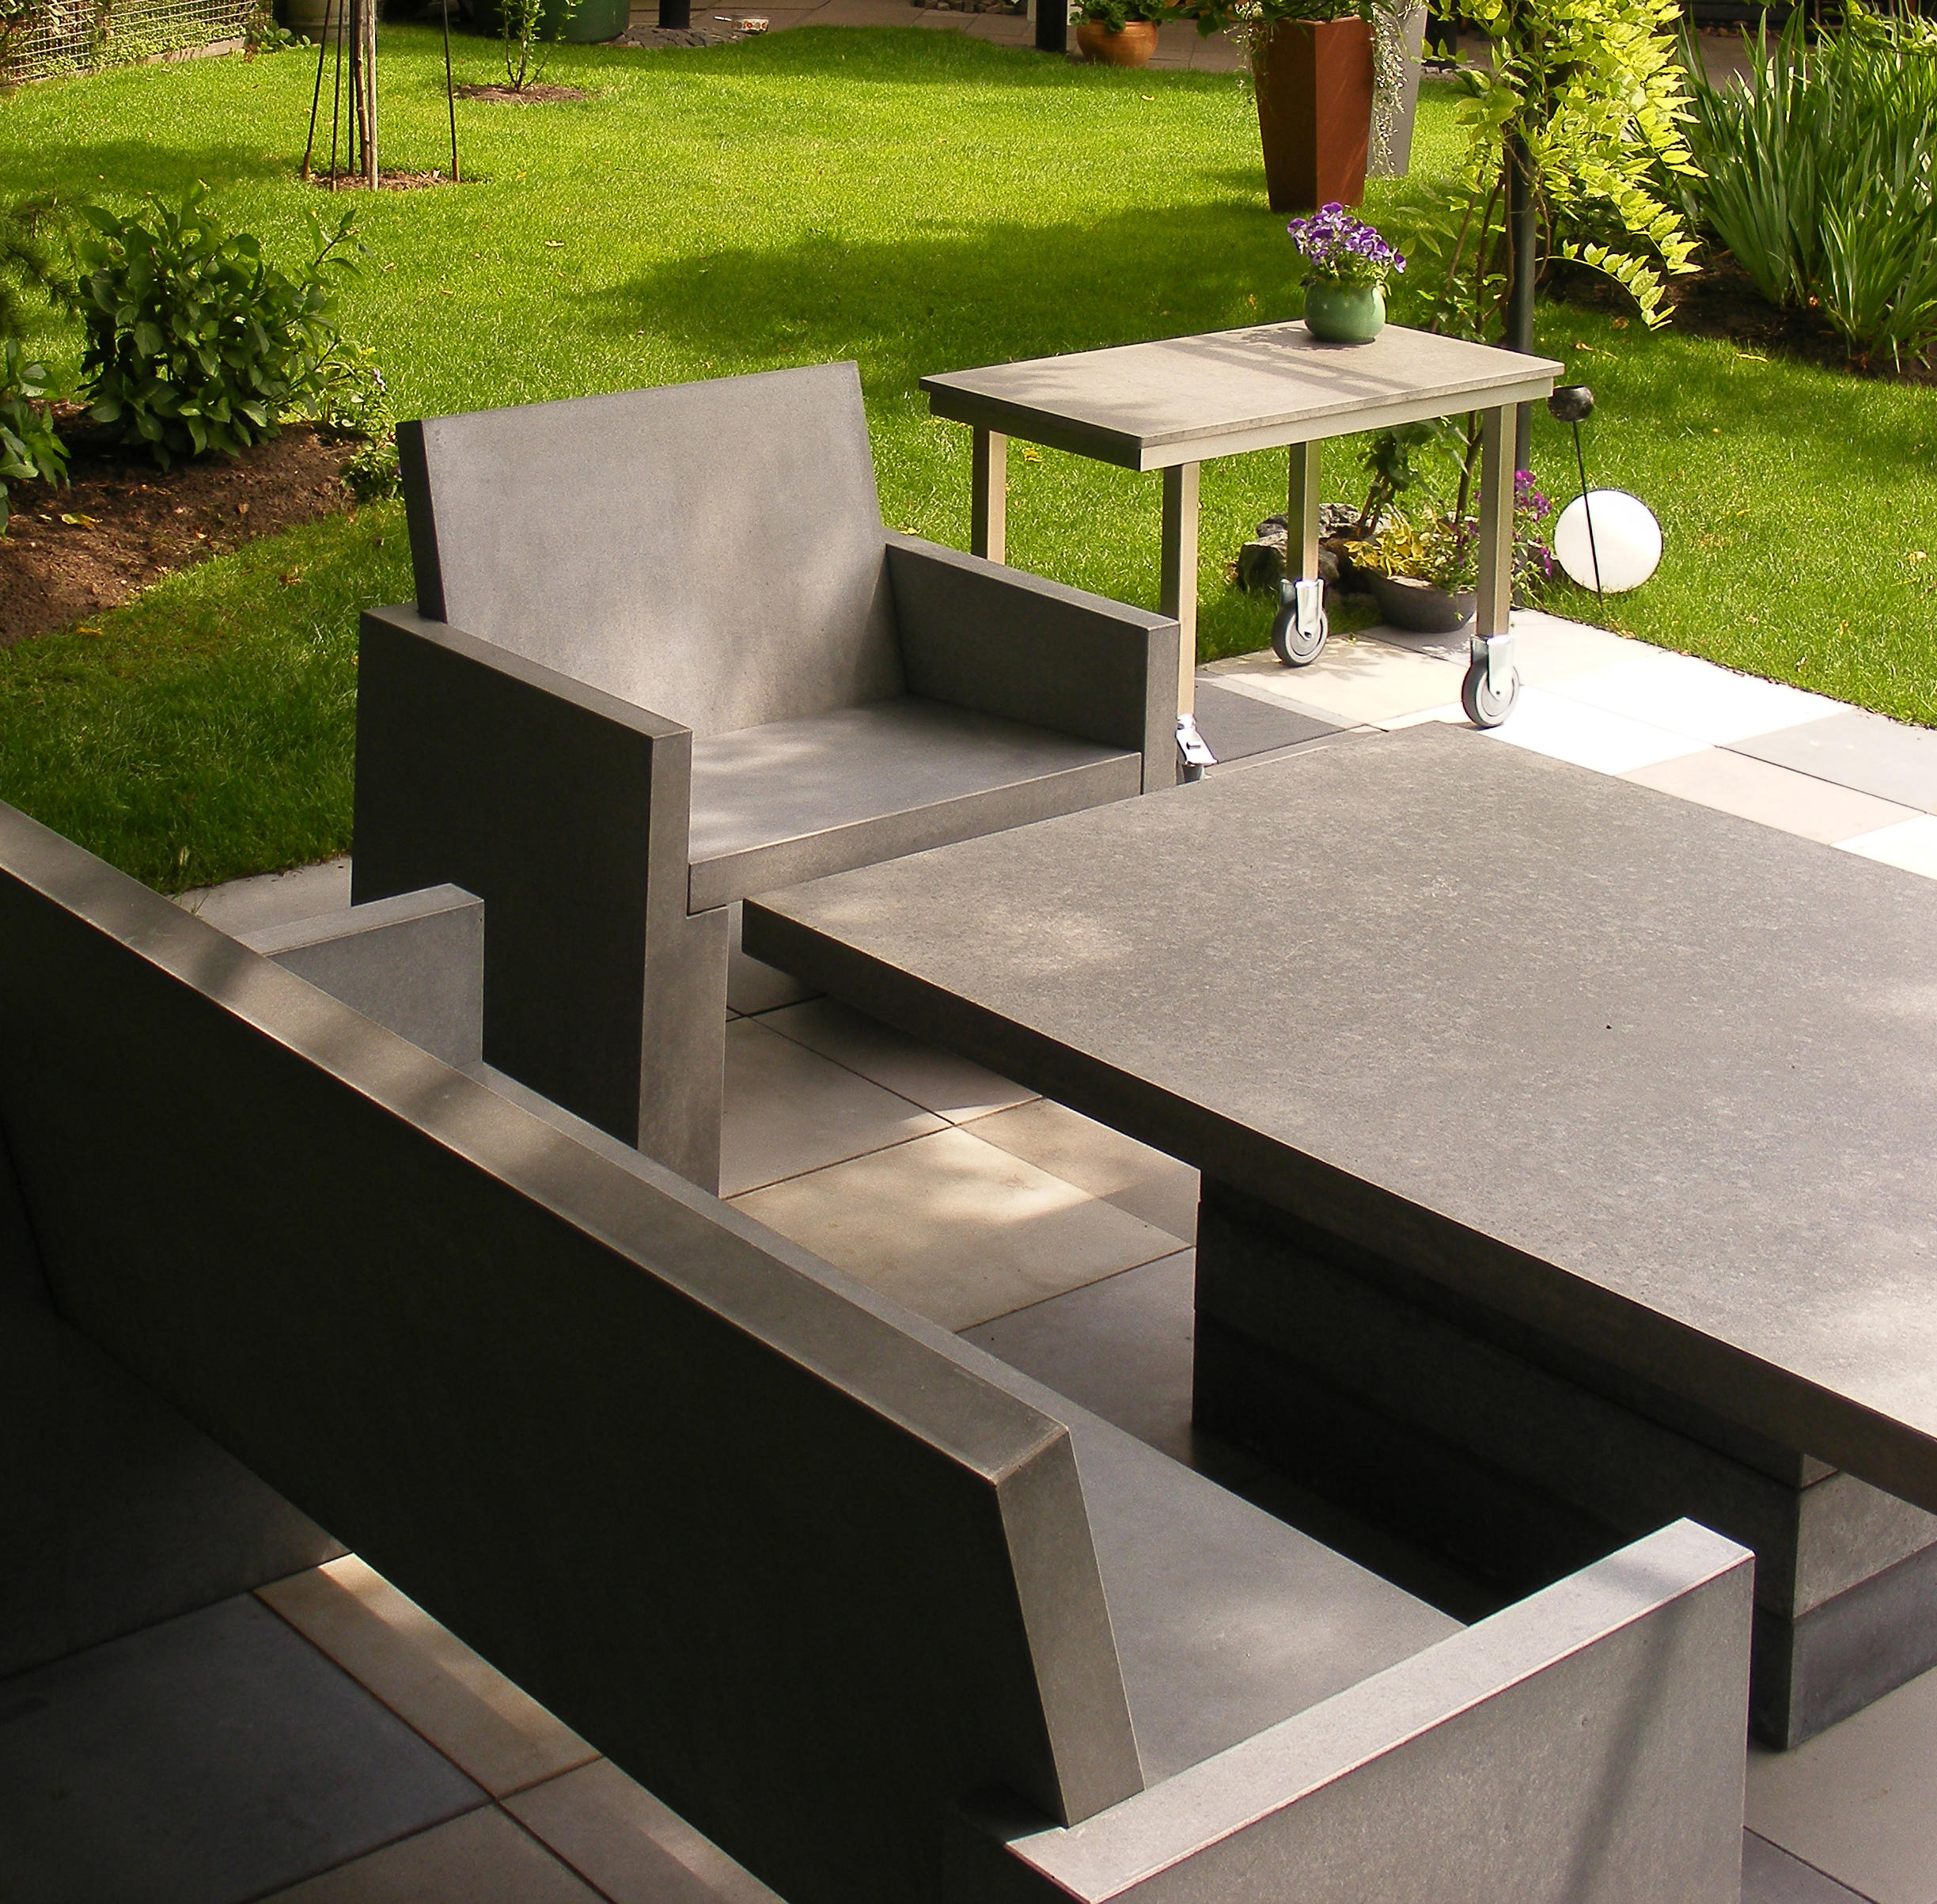 beton gartenm bel katalog my blog. Black Bedroom Furniture Sets. Home Design Ideas